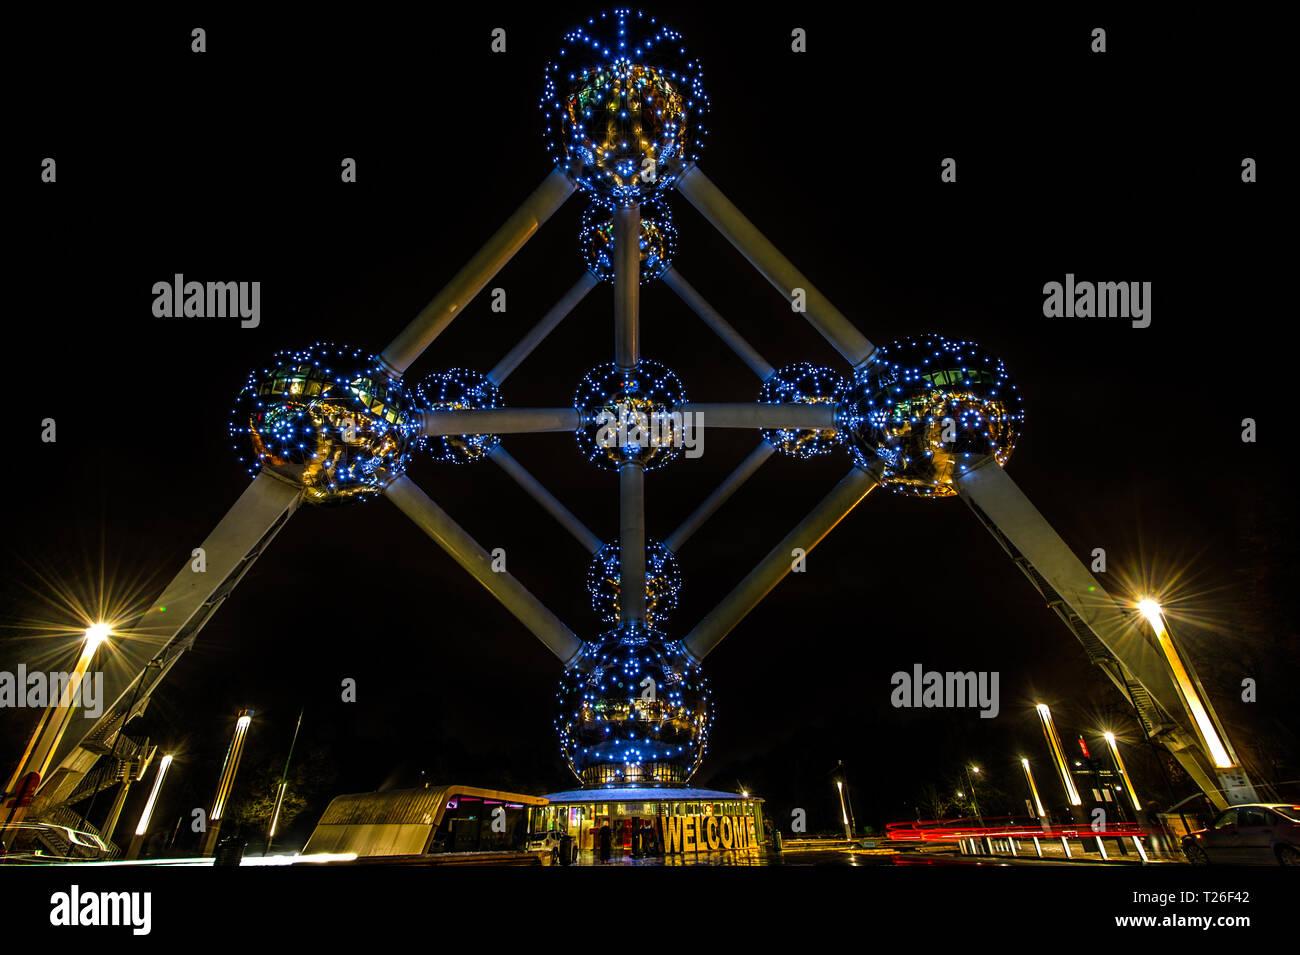 Perfect Symmetry of the Atomium - Stock Image